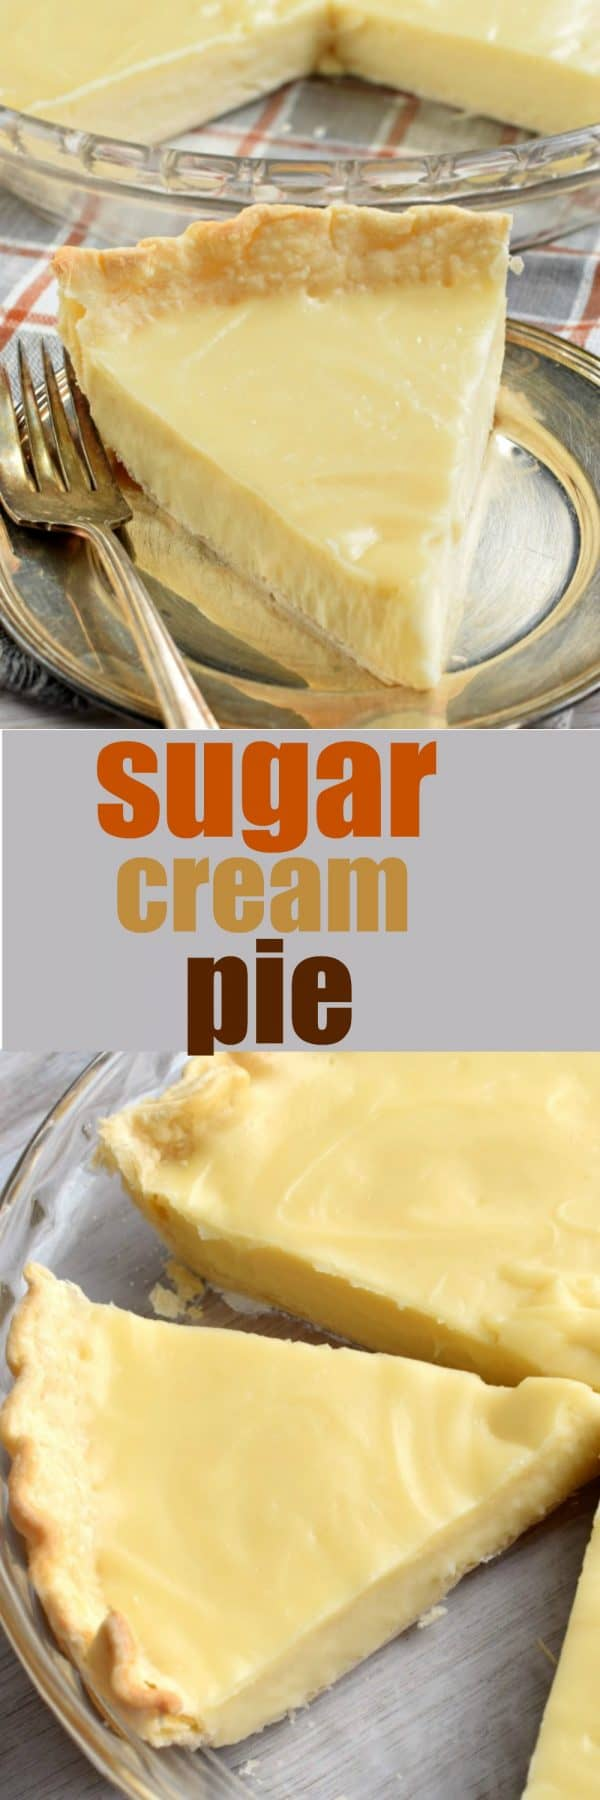 Flaky pie crust filled with a creamy, sweet filling. This classic Hoosier Sugar Cream Pie recipe is a must try!